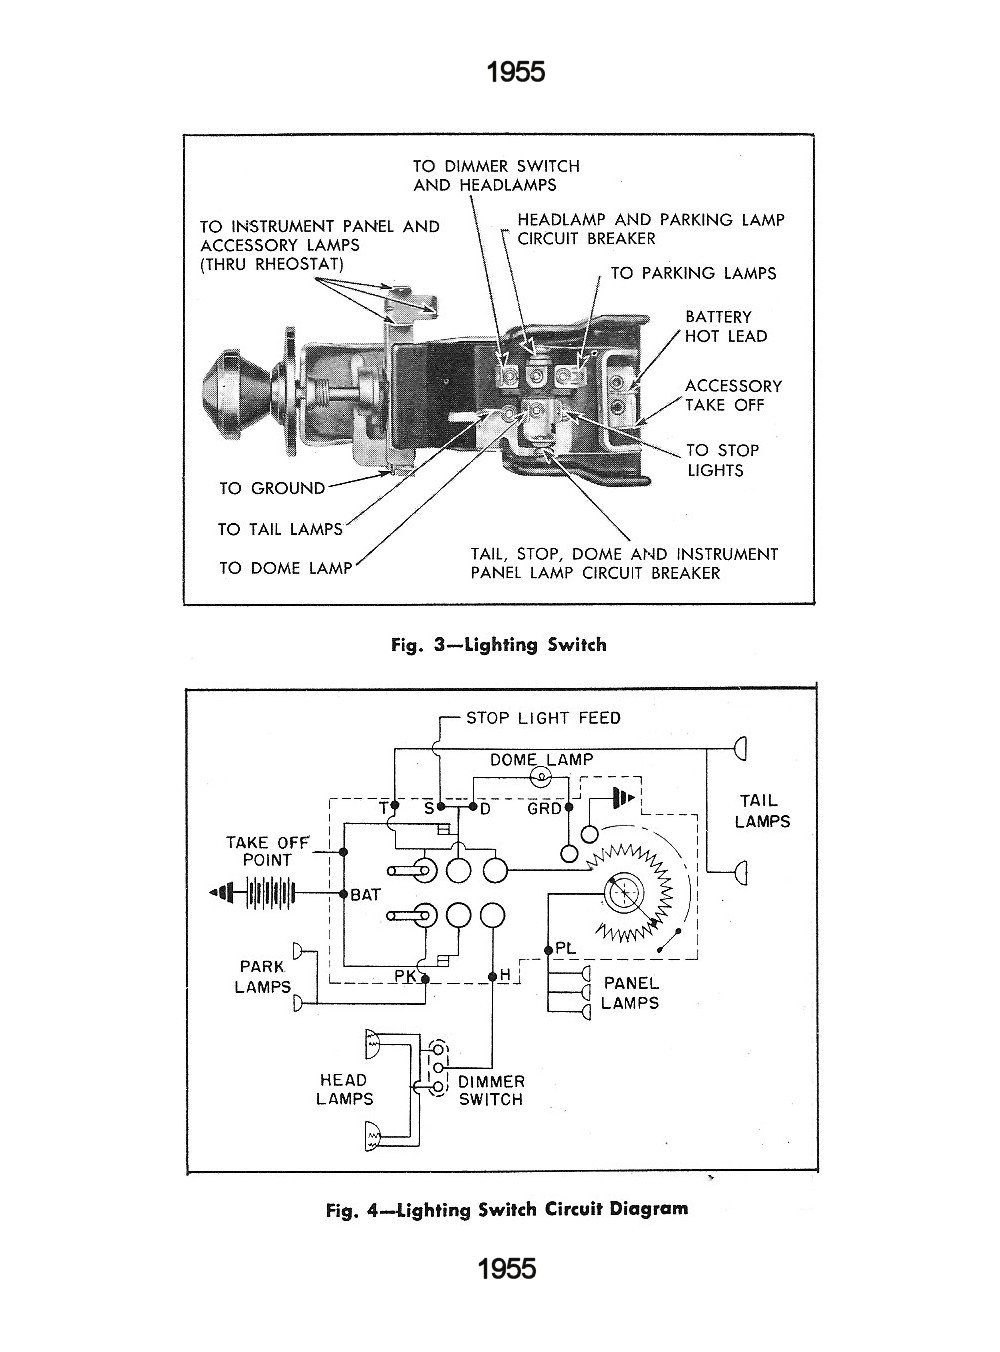 Surprising Johnson Radio Wiring Diagram Basic Electronics Wiring Diagram Wiring Cloud Licukosporaidewilluminateatxorg